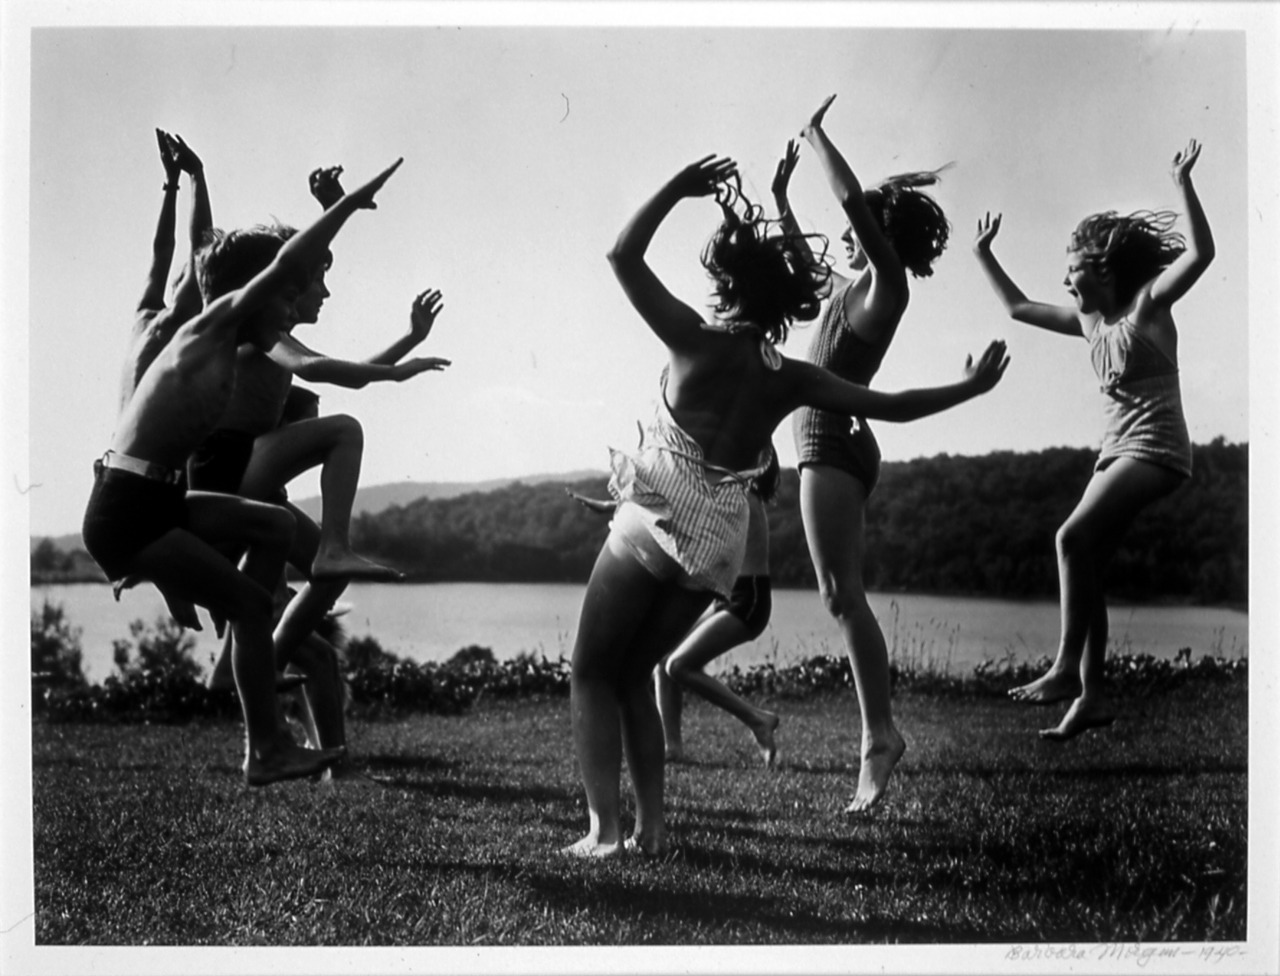 firsttimeuser:  Children Dancing by the Lake, 1940 by Barbara Morgan